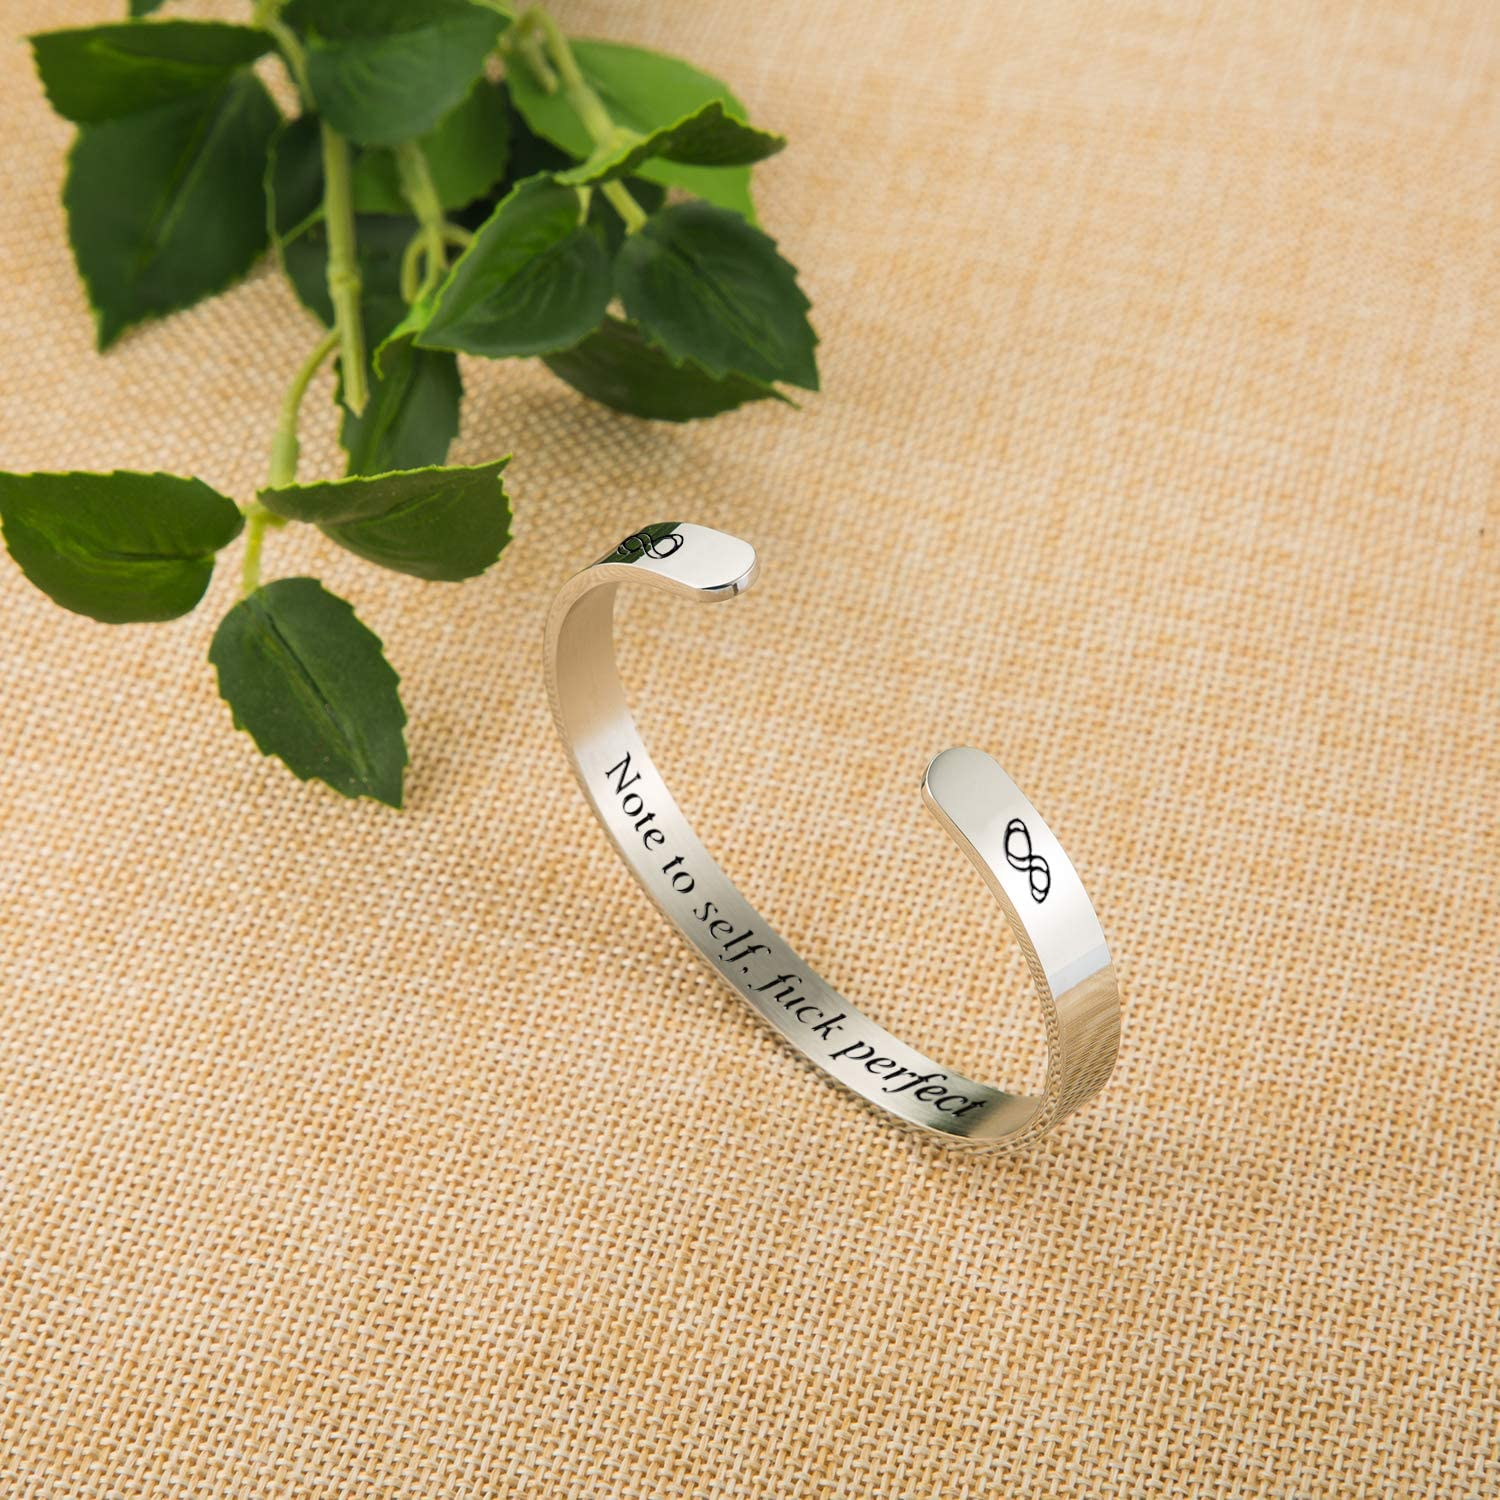 Ldurian Inspirational Bangle Bracelets Gifts for Women Personalized Mantra Cuff Bangle Daily Reminder with Gift Box